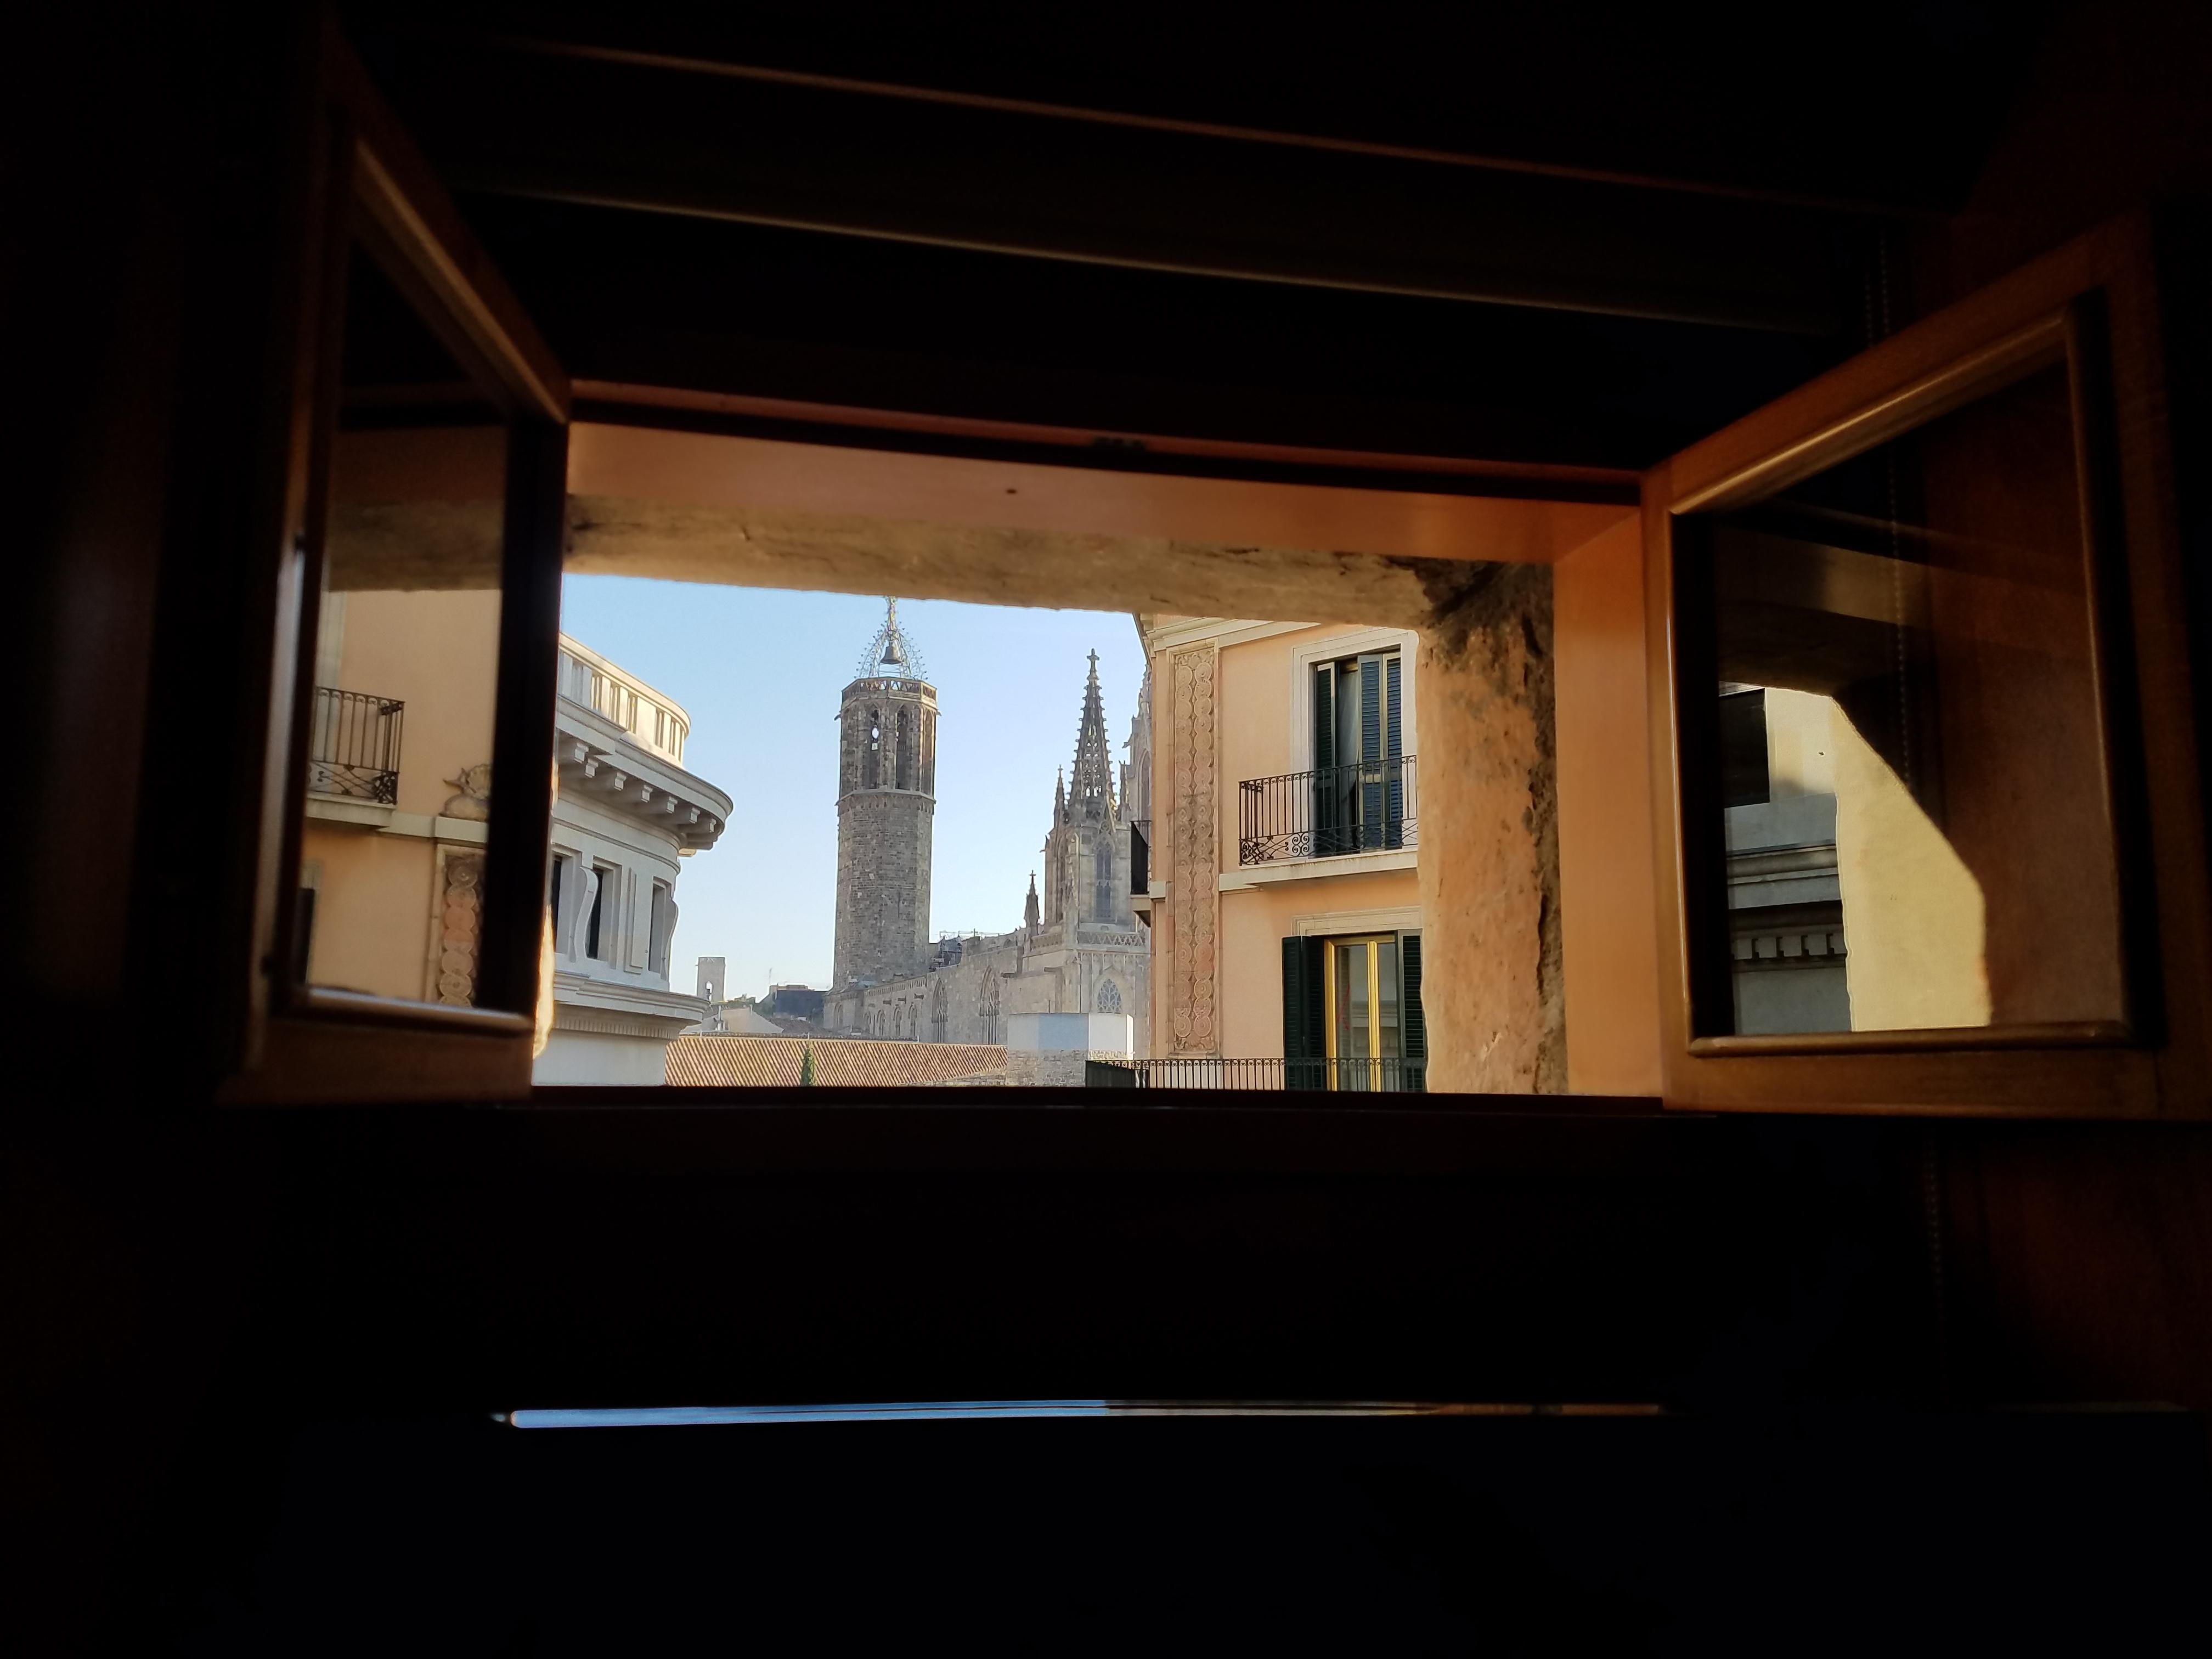 Peekaboo view of the cathedral from window above tv